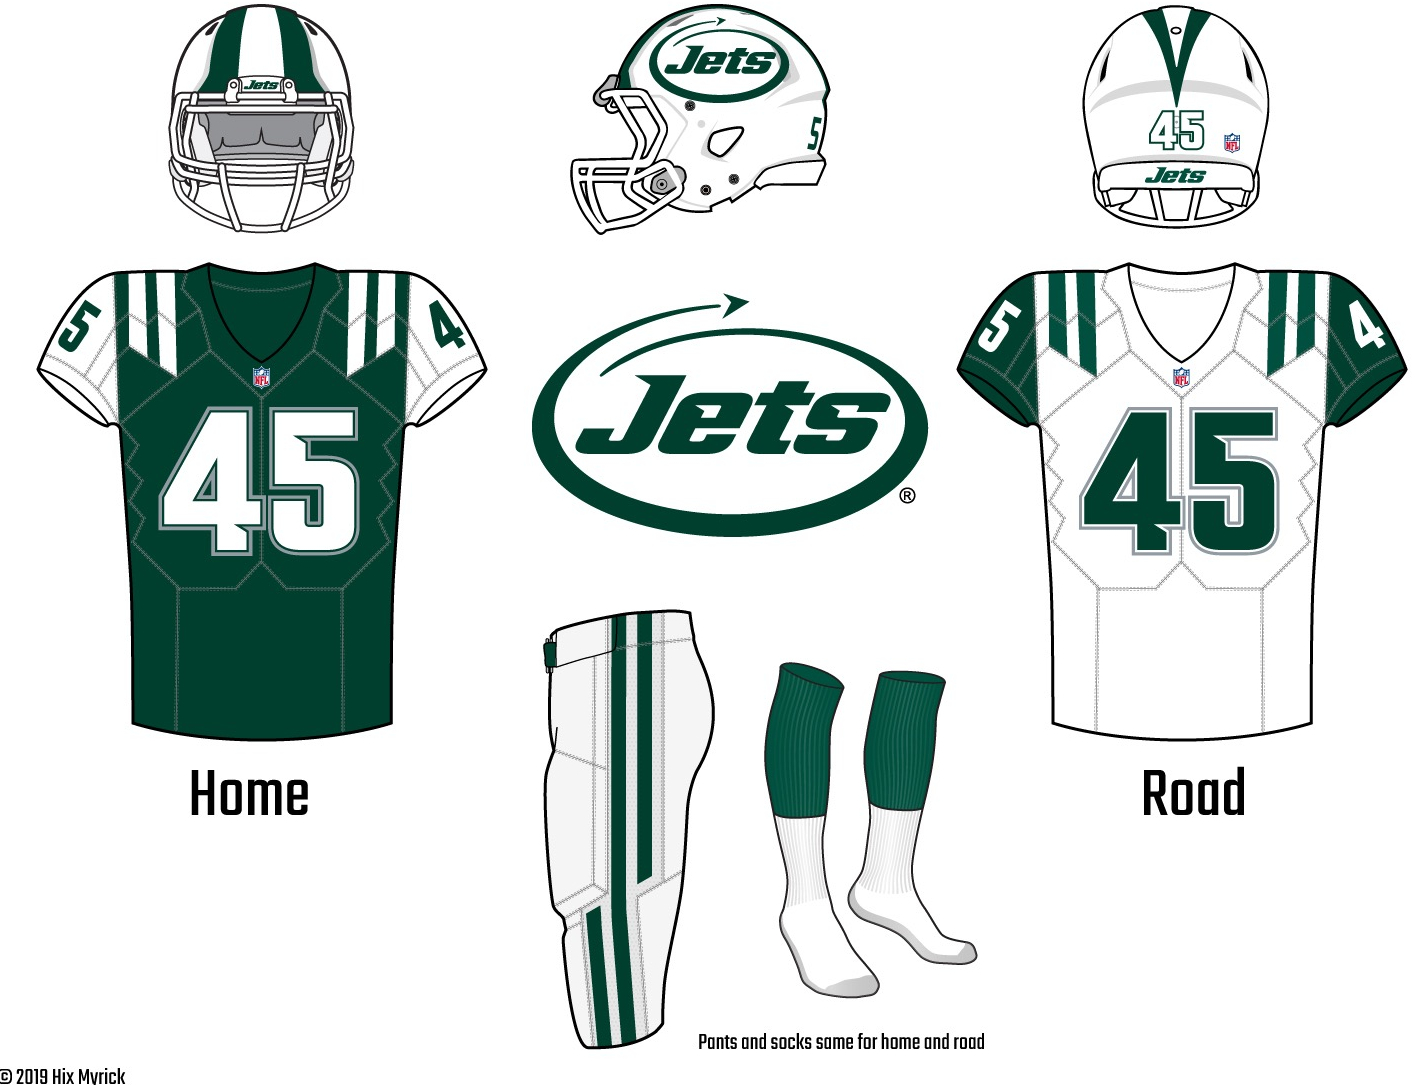 newest d6d9a 9adb0 Uni Watch delivers the winning entries for the New York Jets ...